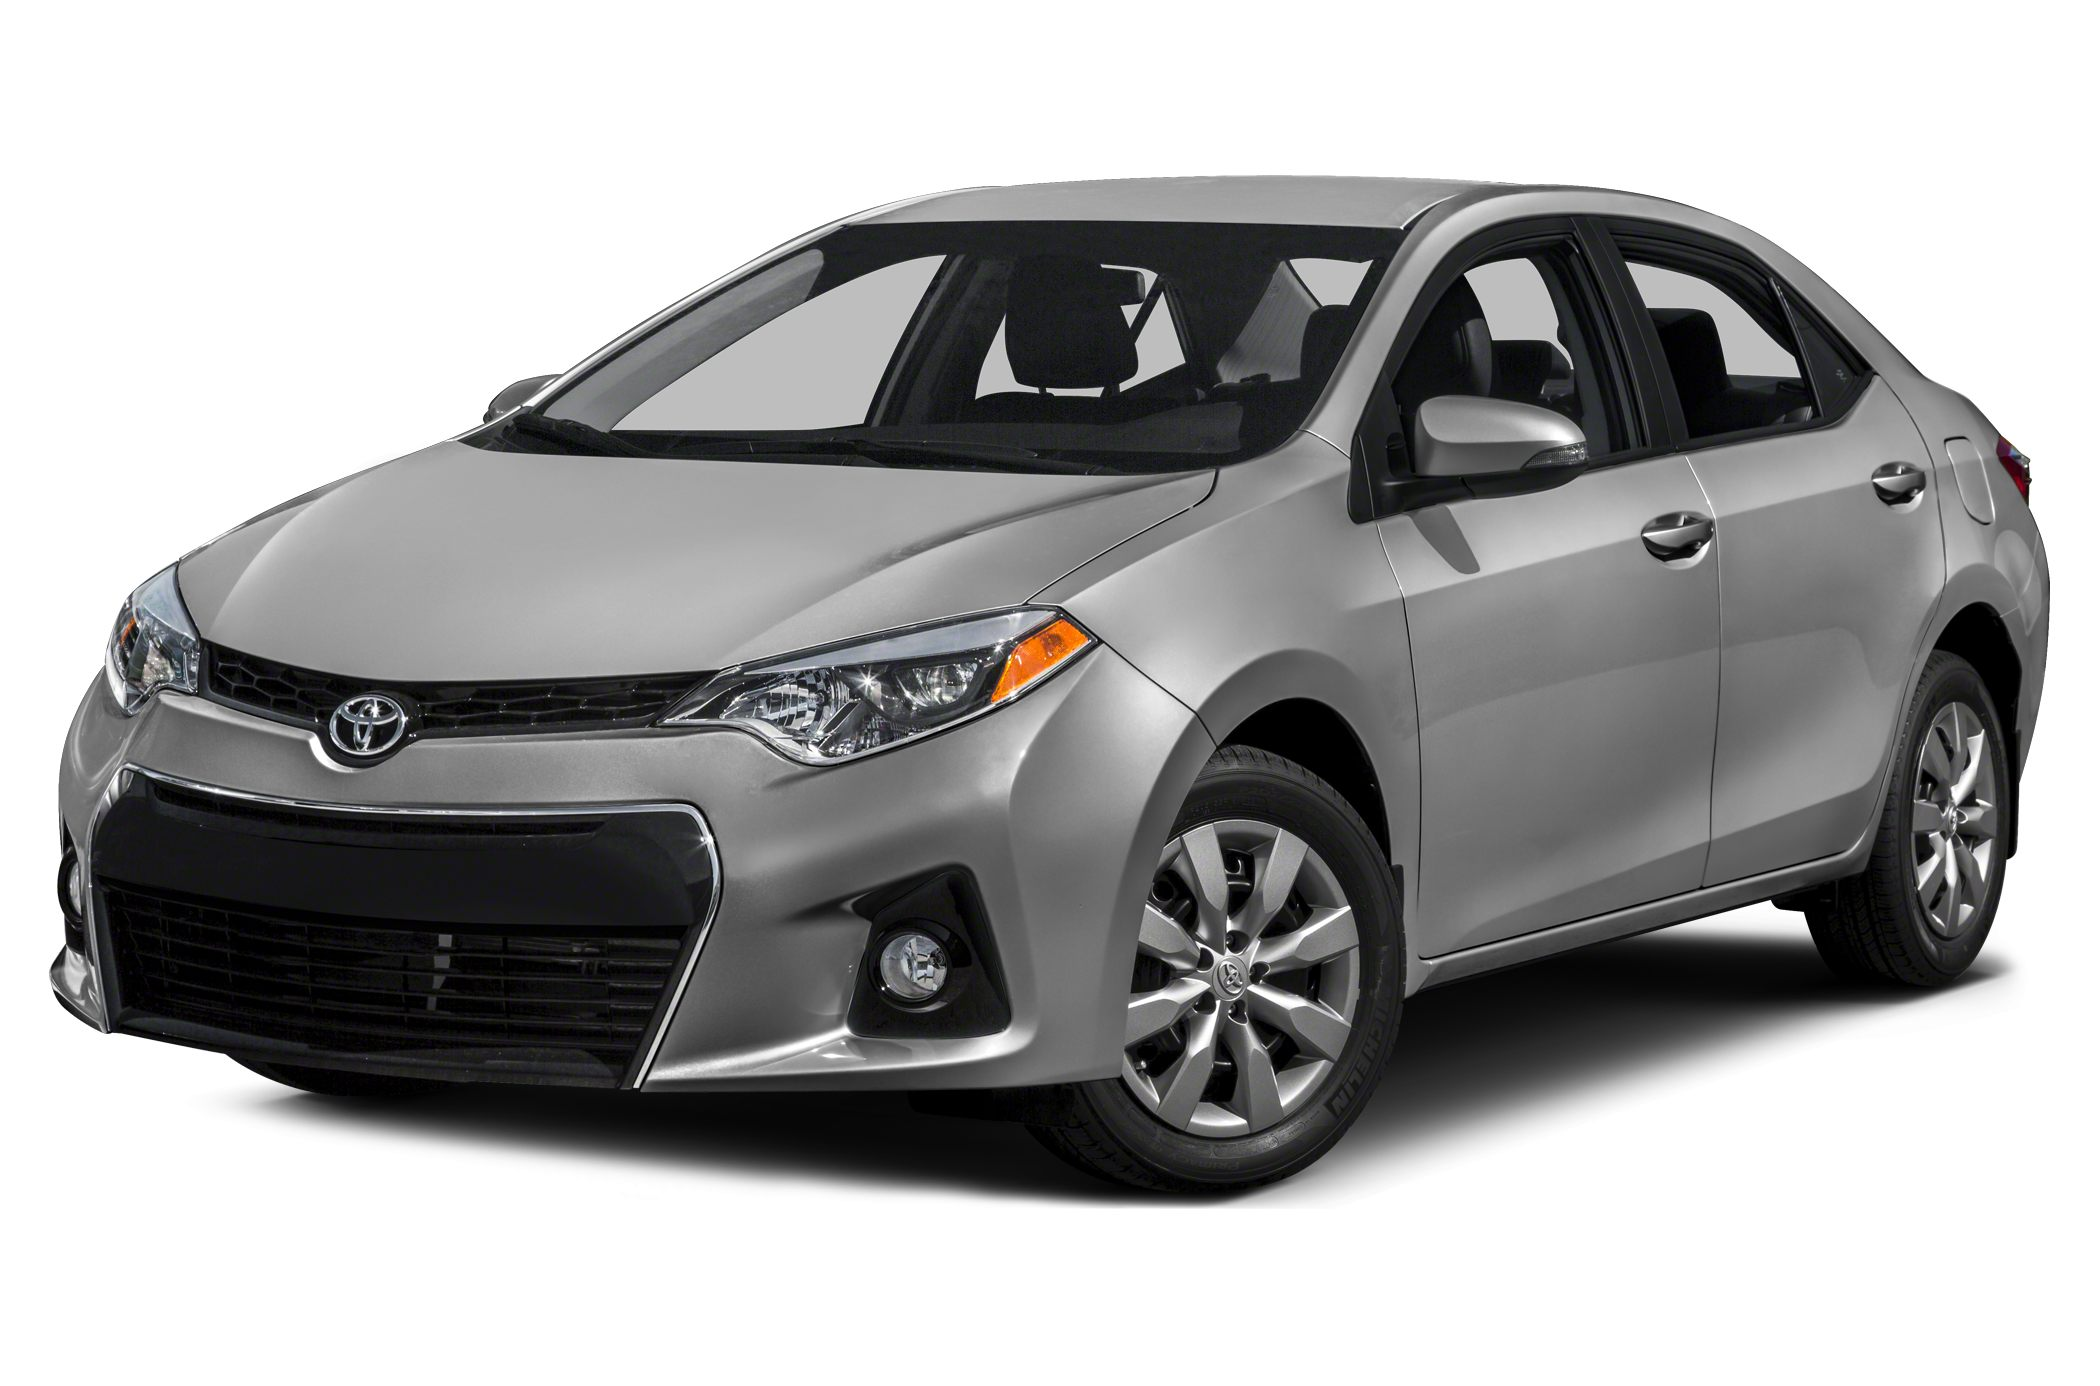 2015 Toyota Corolla S Plus Sedan for sale in Merced for $21,039 with 5 miles.